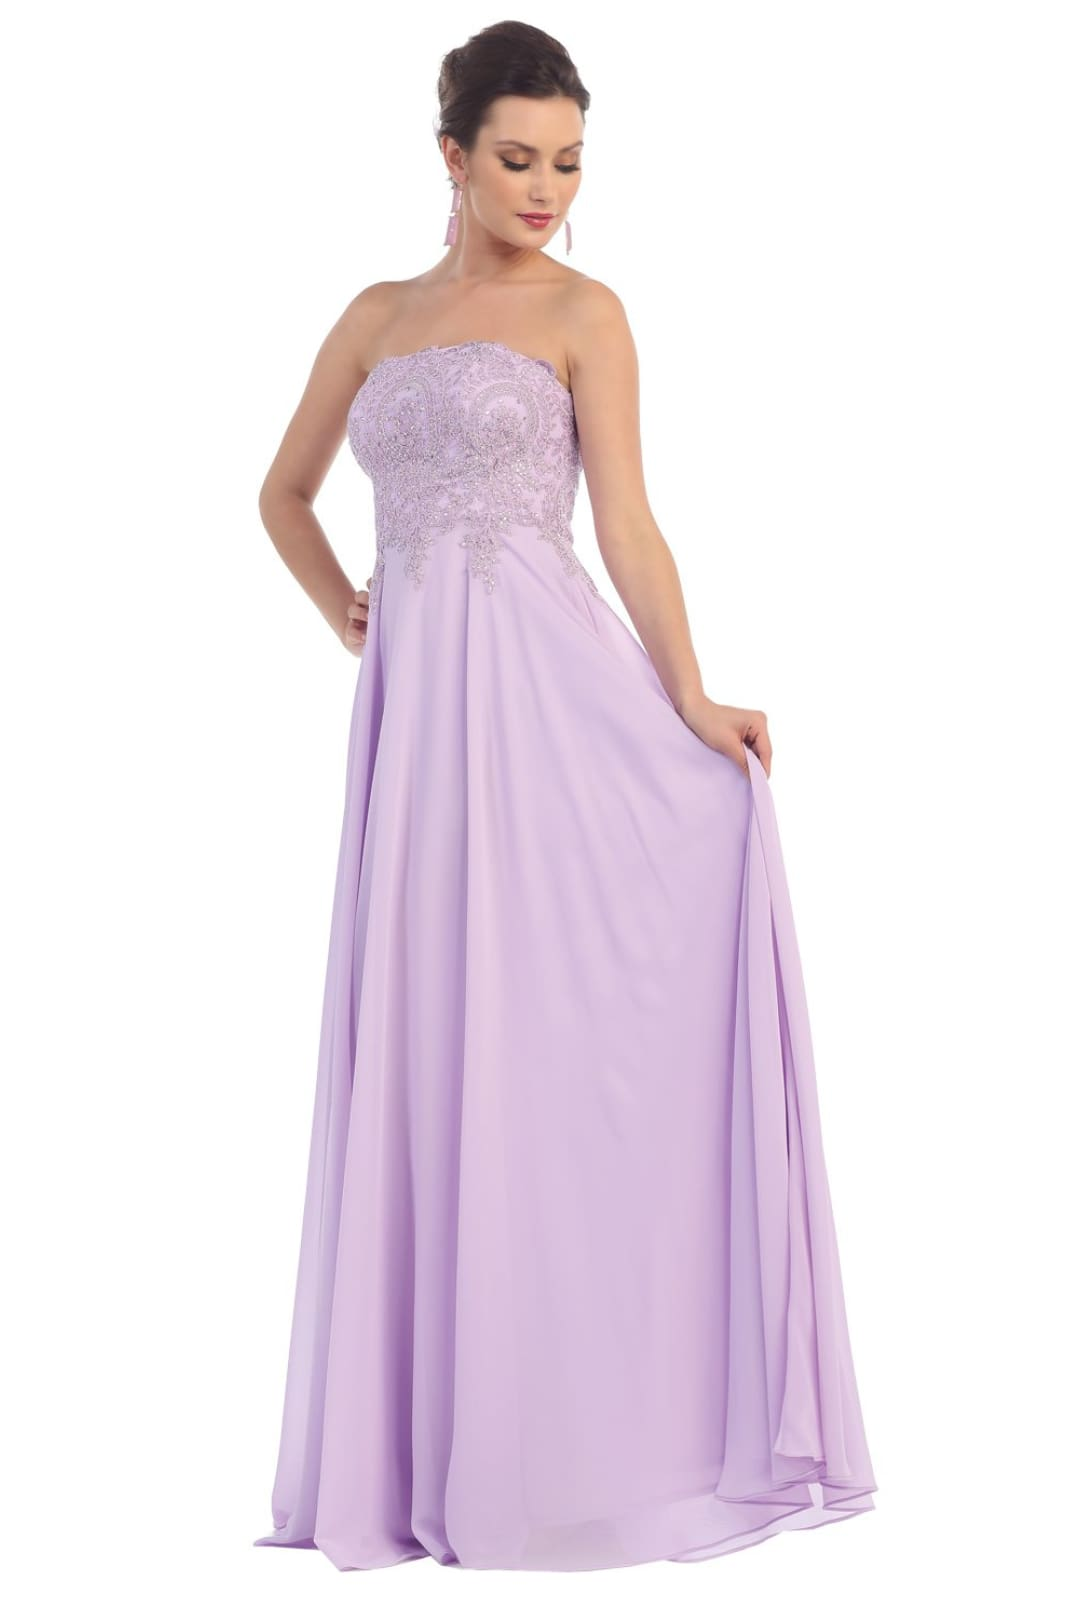 Enchanting Red Carpet Gown - Lilac / 10